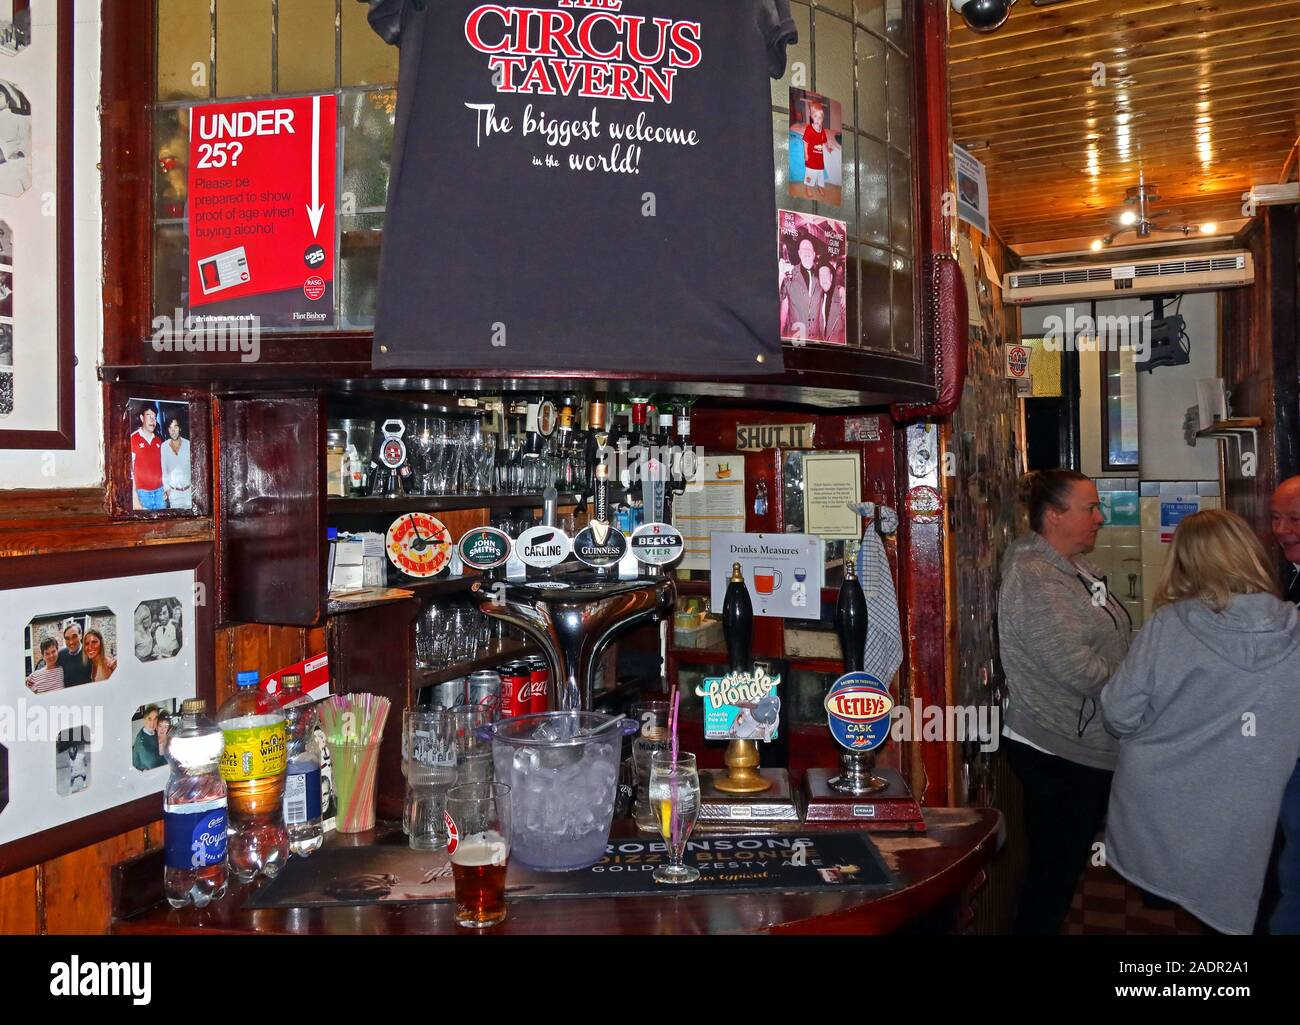 The Circus Tavern pub, 86 Portland St, Manchester, England, M1 4GX - Smallest pub in Europe, interior bar area Stock Photo